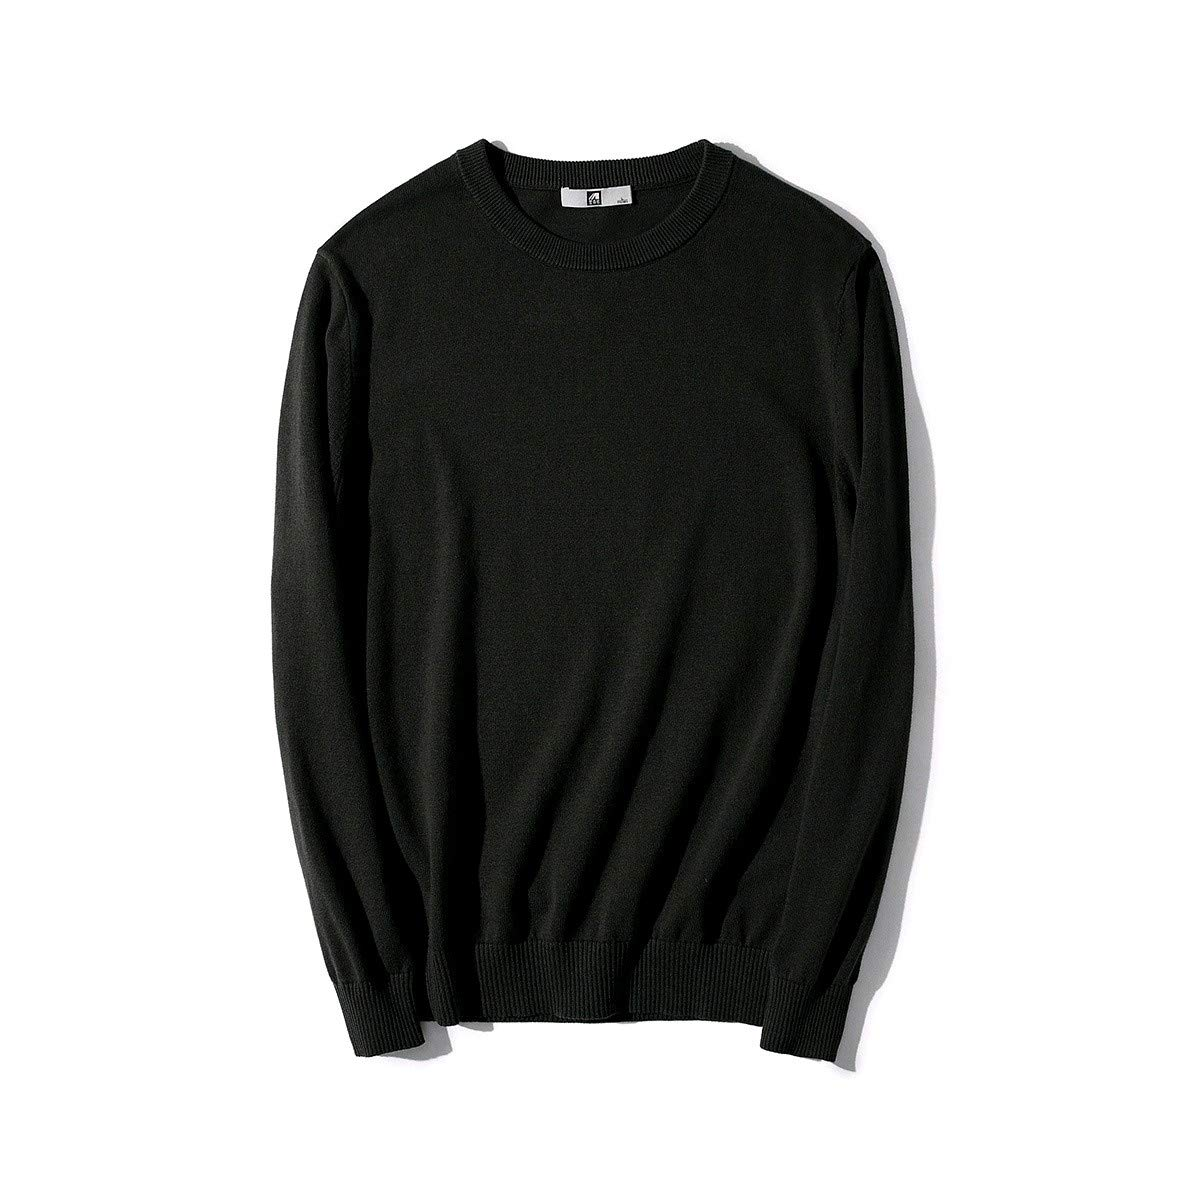 YUNY Mens His and Her Juniors Colortone Knitting Tshirt Sweater Black S